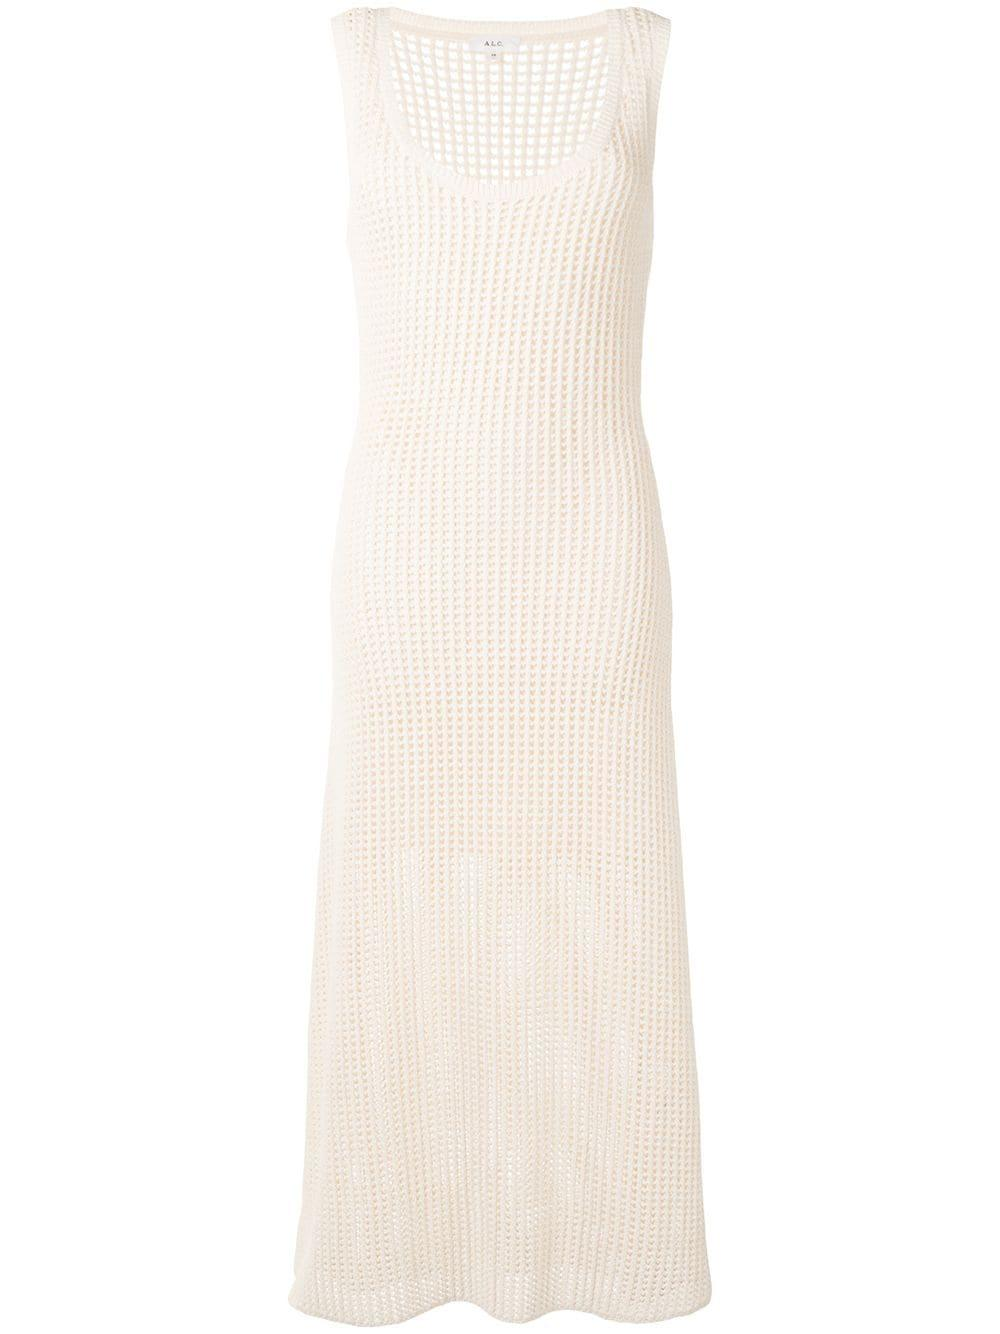 Knit Sleeveless Maxi Dress Item # 7SWDR00267